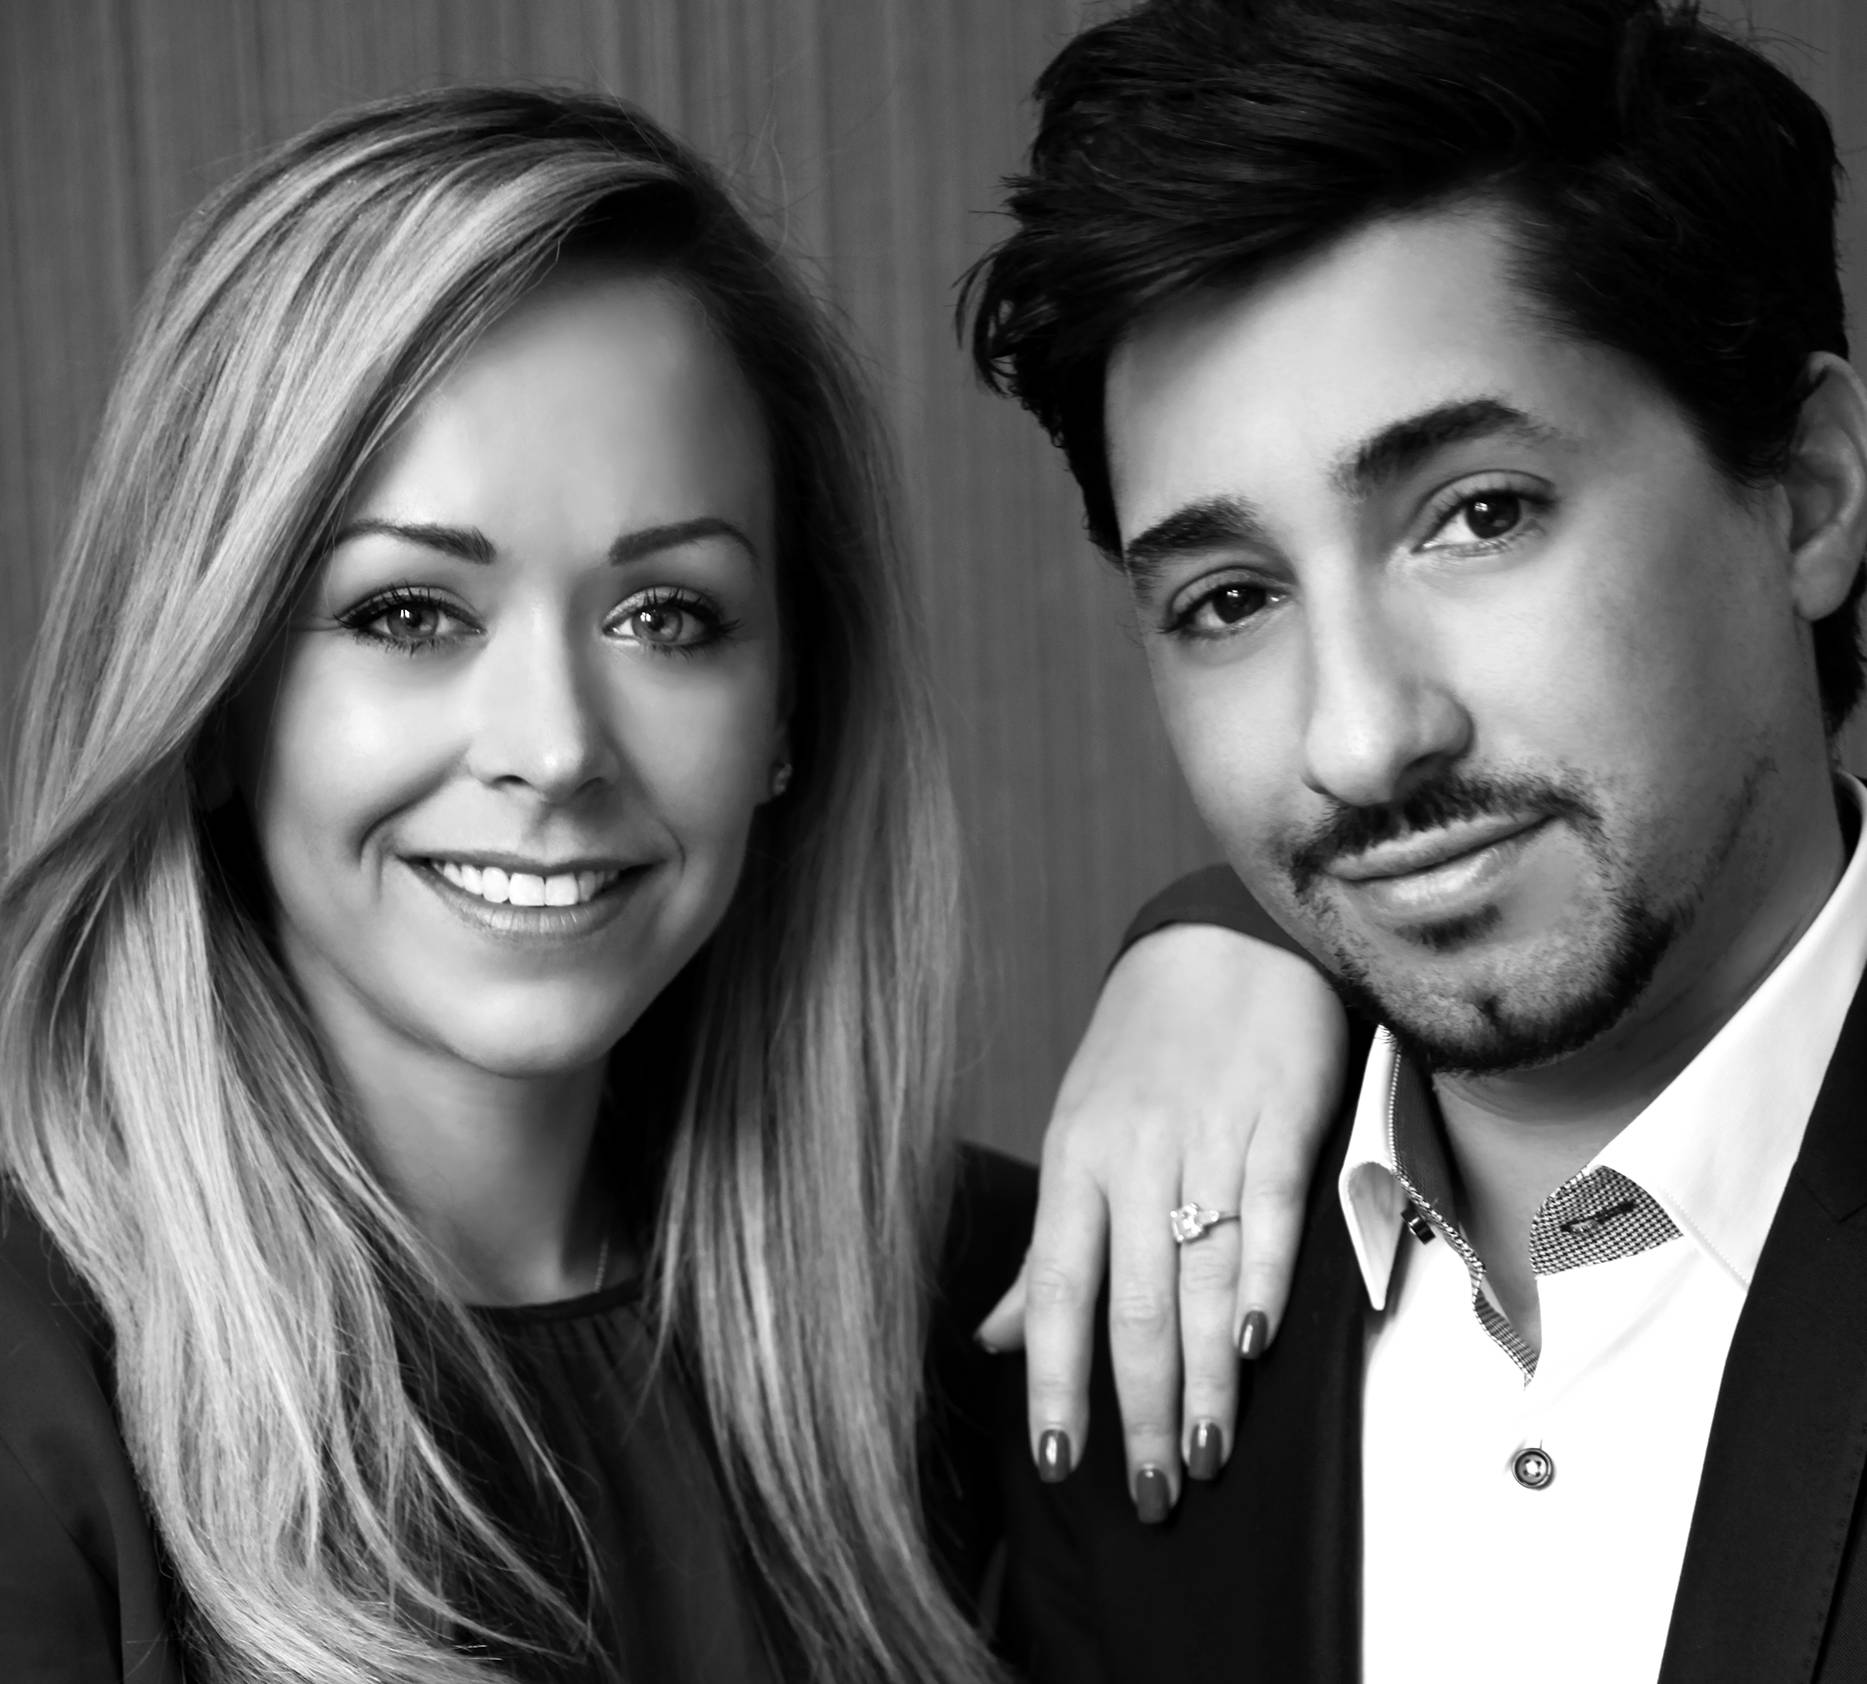 <h1>39. Tamara Ralph & Michael Russo</h1> In six years the bespoke clothing label founded by these two Aussies has attracted a clientele that includes Angelina Jolie and royals the world over. R&R's handmade pieces fetch up to $500,000 and range from baby garments to Beyoncé's crystal-studded stage wear. Nimbler and more exclusive than the big houses, R&R gets gowns to the rich and famous faster (four weeks instead of six months) and with a white-glove touch (Cartier on site; chauffeured rides in a Rolls-Royce). Ralph, a fourth-generation couturier who sold dresses to Sydney's socialites as a teen, handles the fashion; Russo, the finances—the company is growing 400% a year.